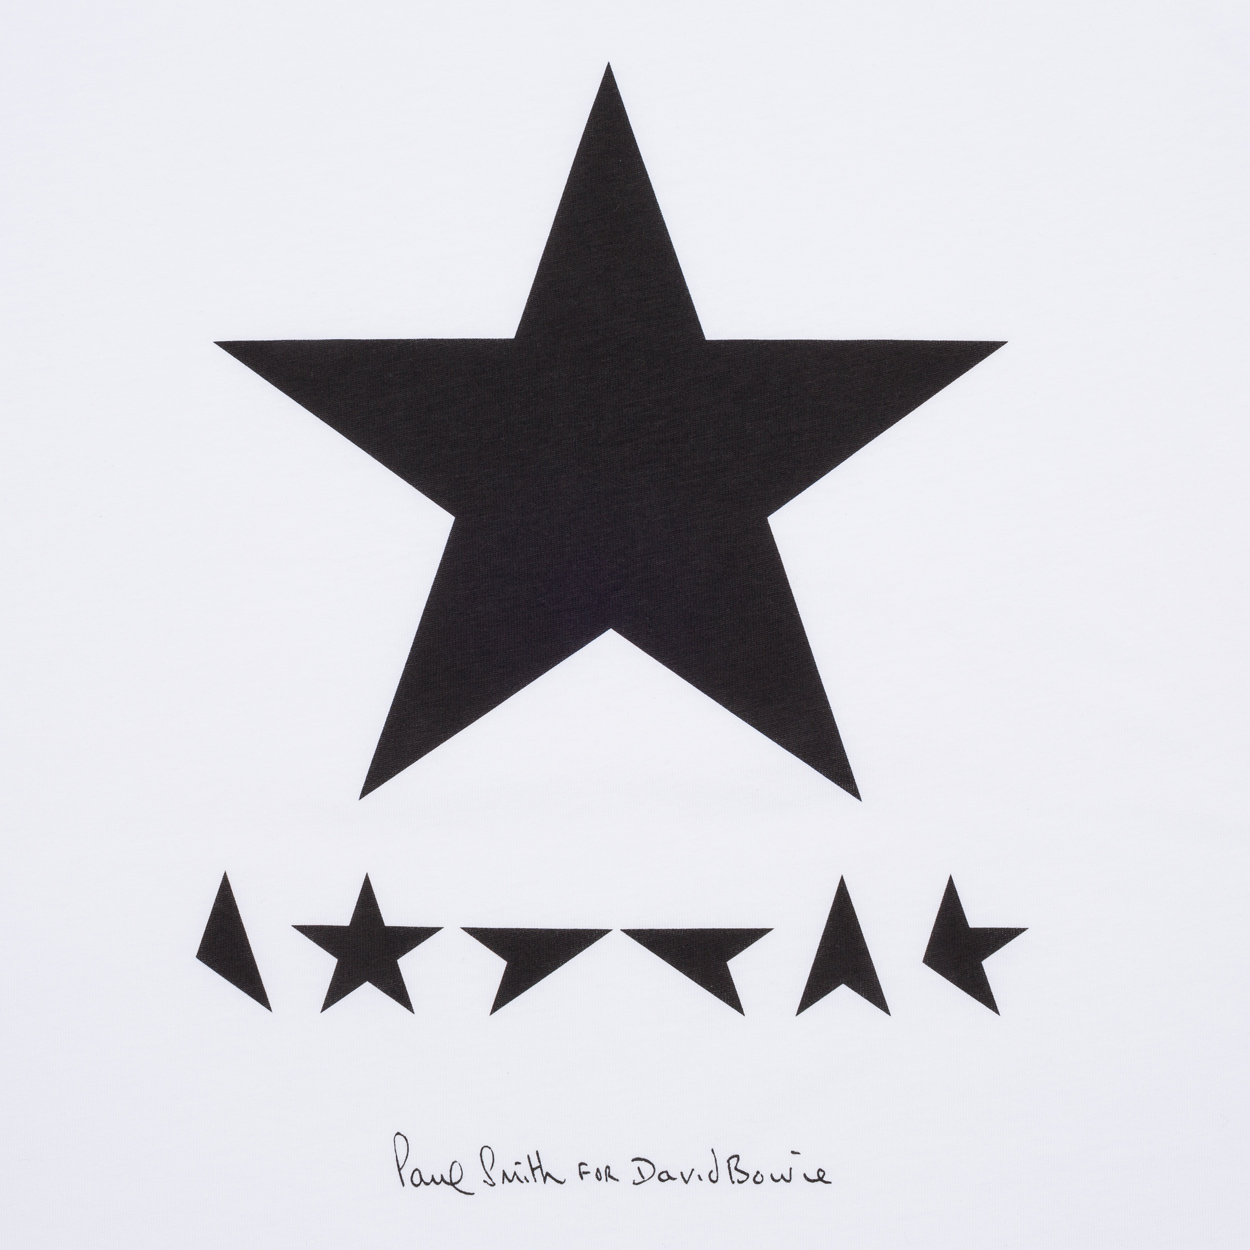 PAUL SMITH FOR DAVID BOWIE (3)